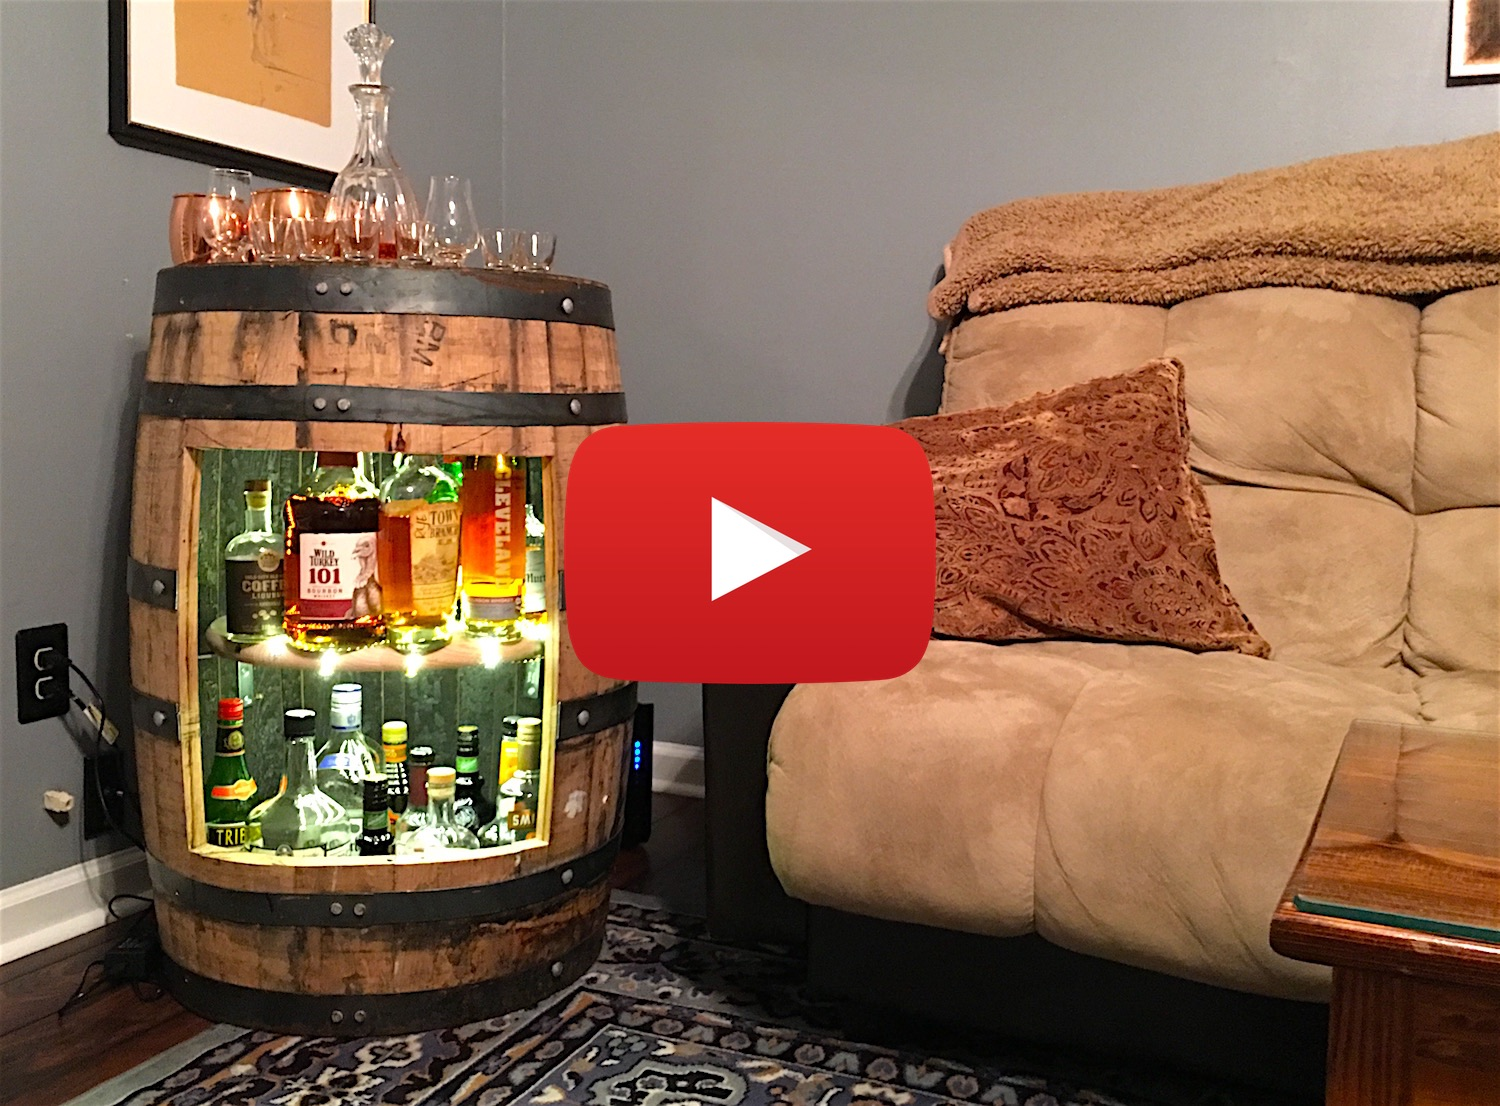 Genial Build A Whiskey Or Wine Barrel Liquor Cabinet [Video]